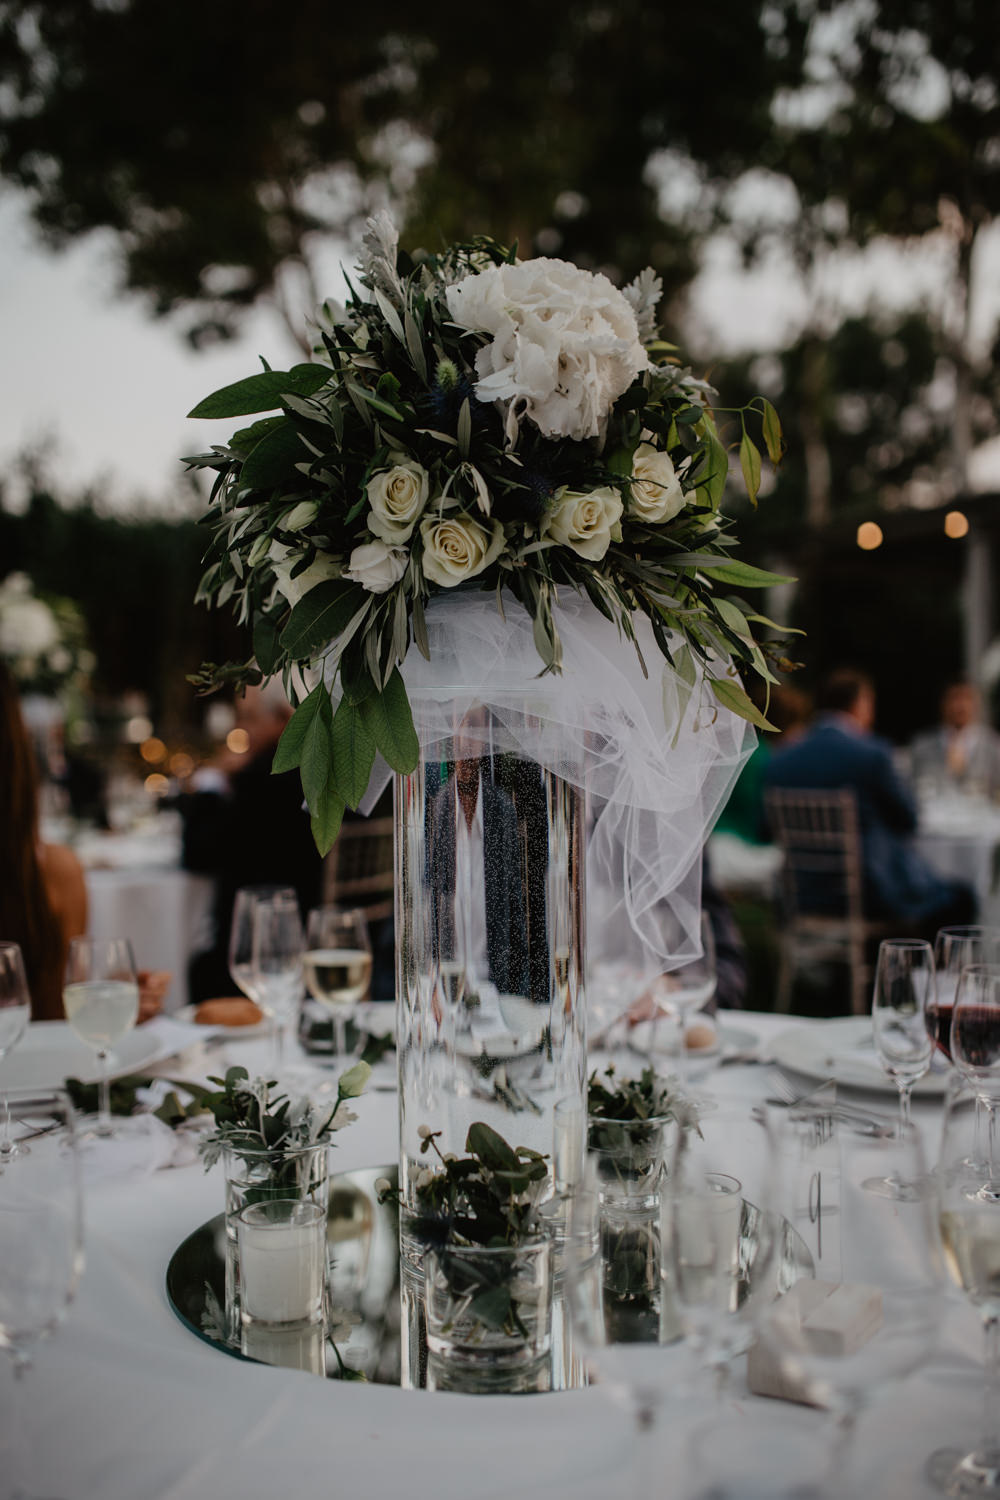 Centrepiece Floral Tall Vase Foliage Mirror Plate Candle Greece Destination Wedding Elena Popa Photography